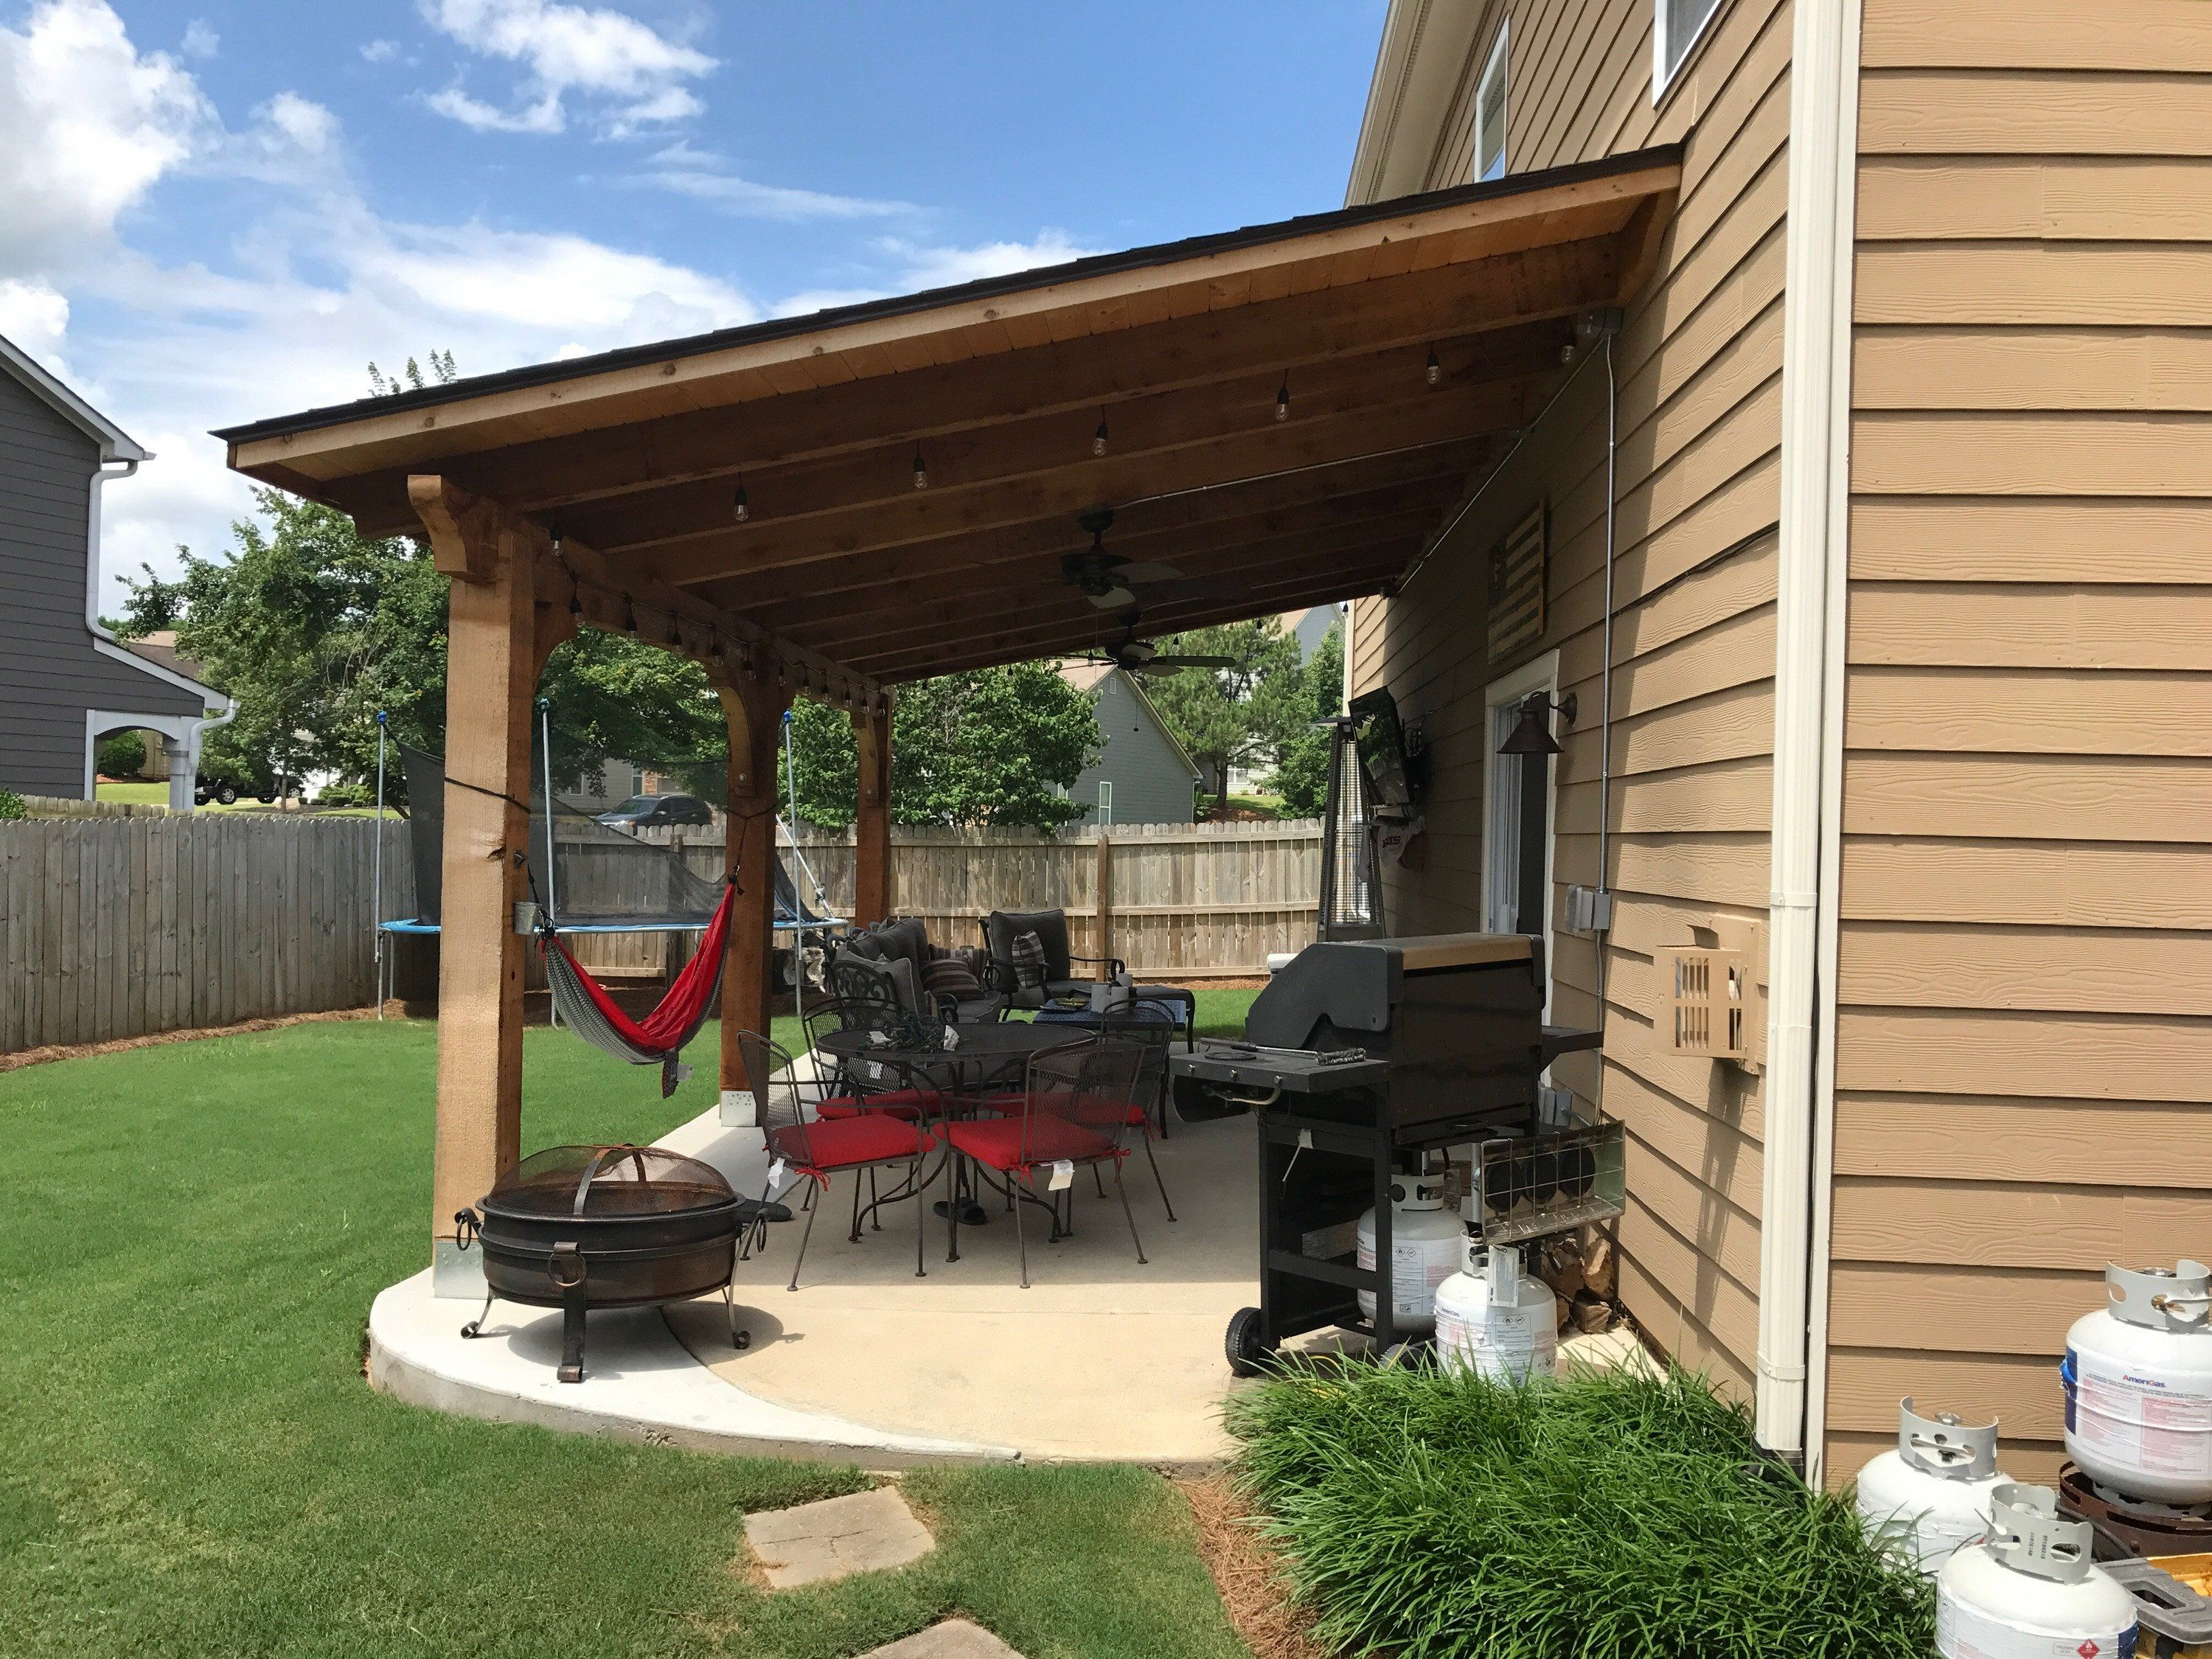 Shed Roof Awnings Patio Design Covered Patio Design Patio